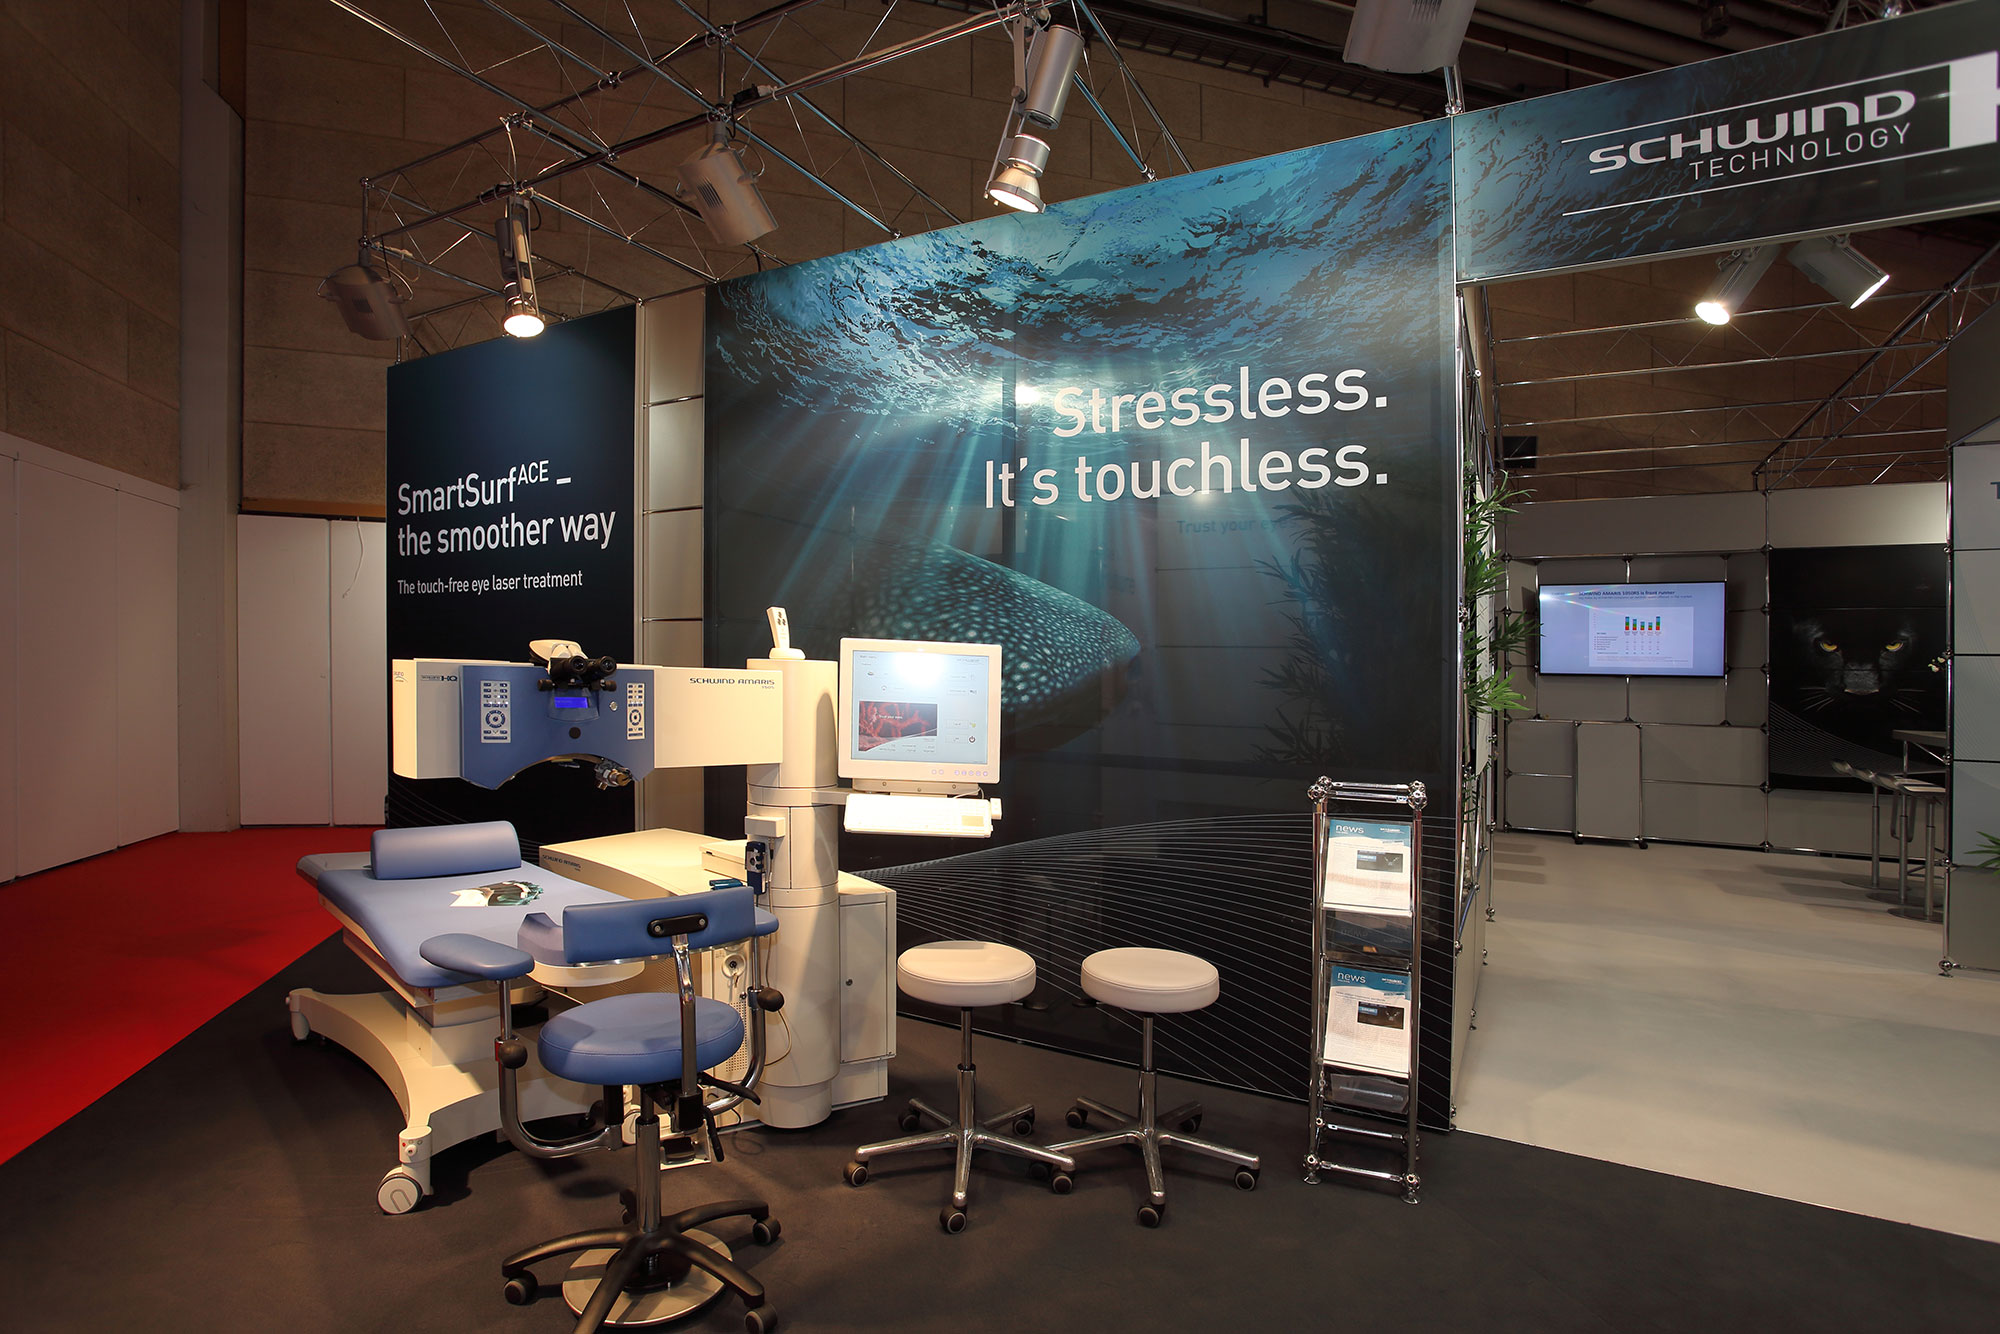 Exhibition stand of Schwind at the ESCRS 2016